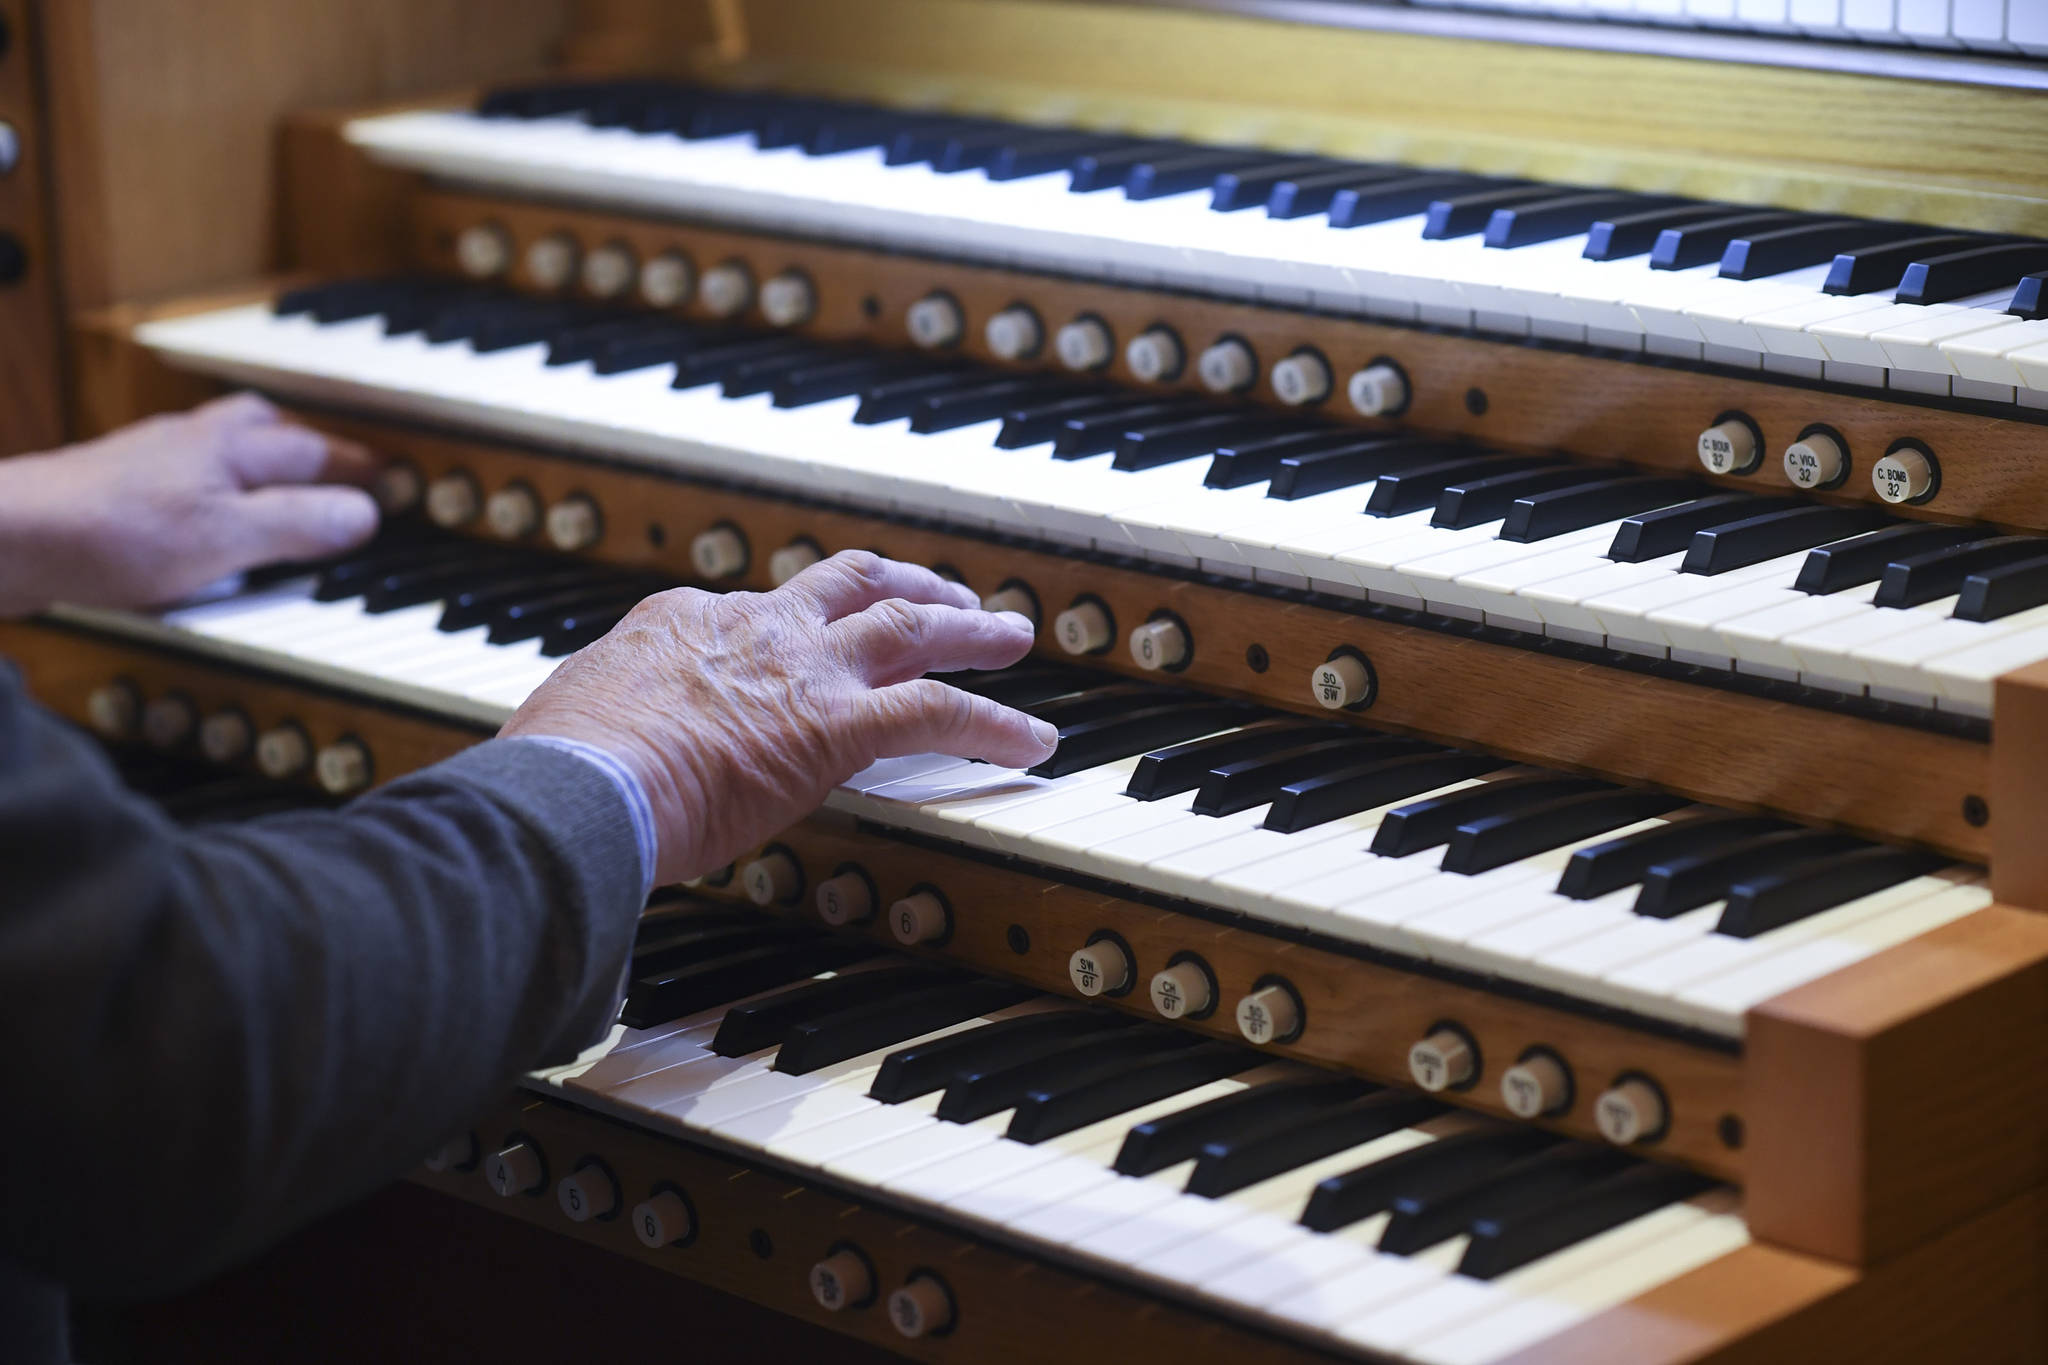 Jonas Nordwall, organist and artistic director of music for the First United Methodist Church in Portland, Oregon, works on Thursday, Nov. 14, 2019, at preparing a 2013 Allen Bravura Organ for its first public concert at Holy Trinity Episcopal Church. Nordwall played free inaugural concert at the church on Friday, Nov. 15. (Michael Penn | Juneau Empire)